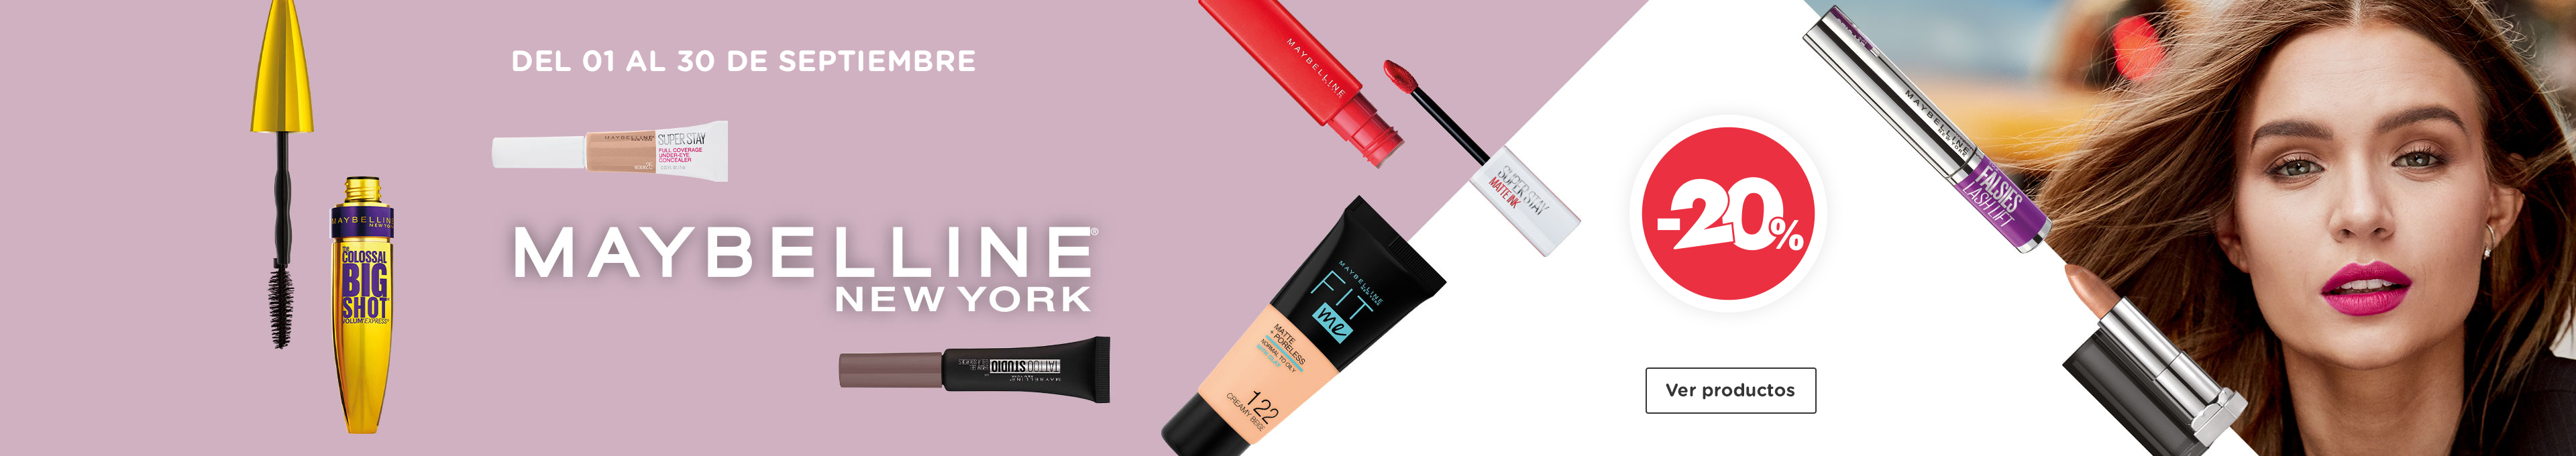 LorealDPGP_MAYBELLINE_20OFF